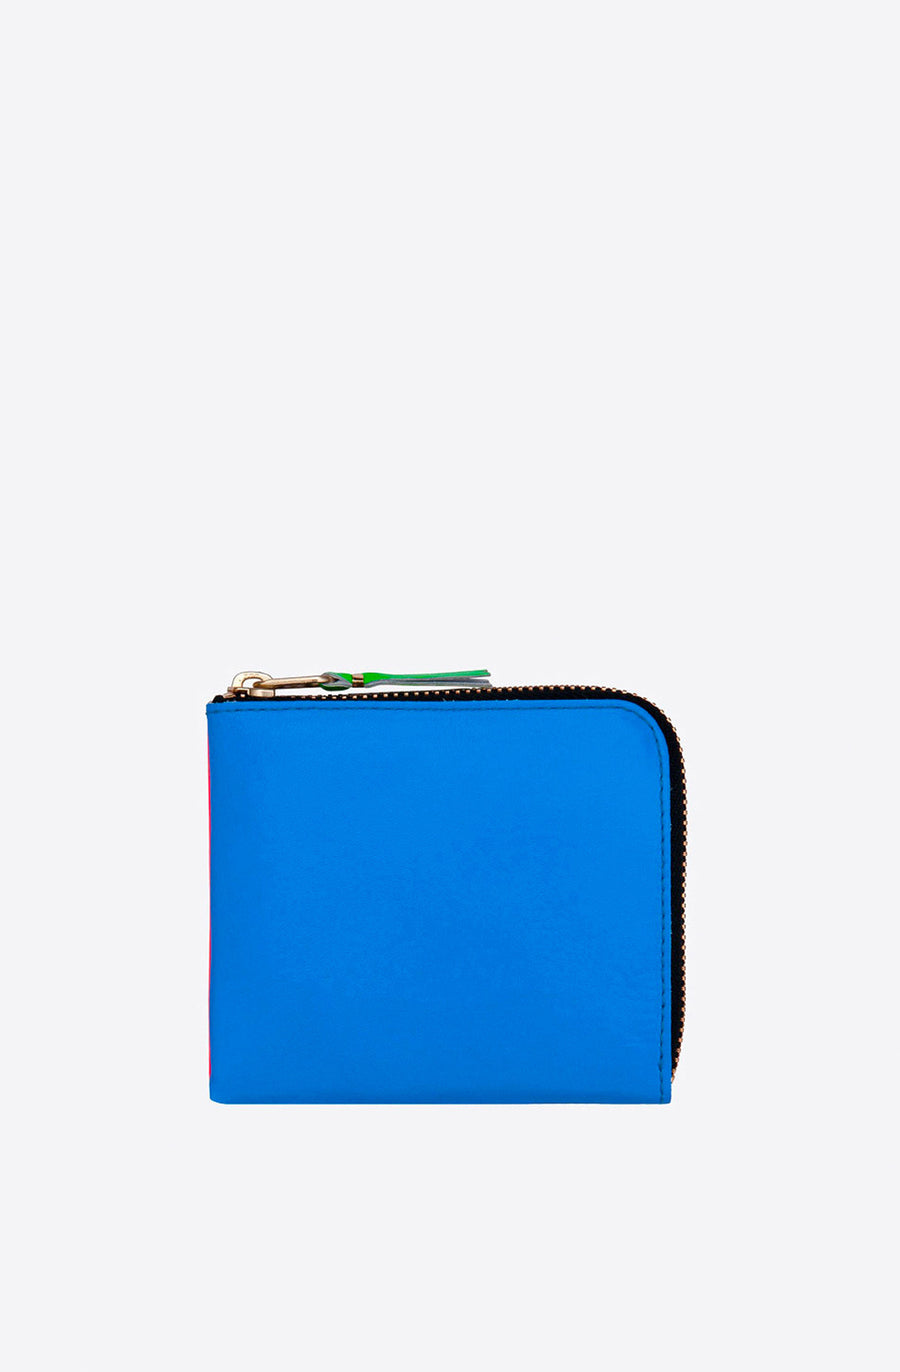 Super Fluo Corner Zip Wallet-orange/blue